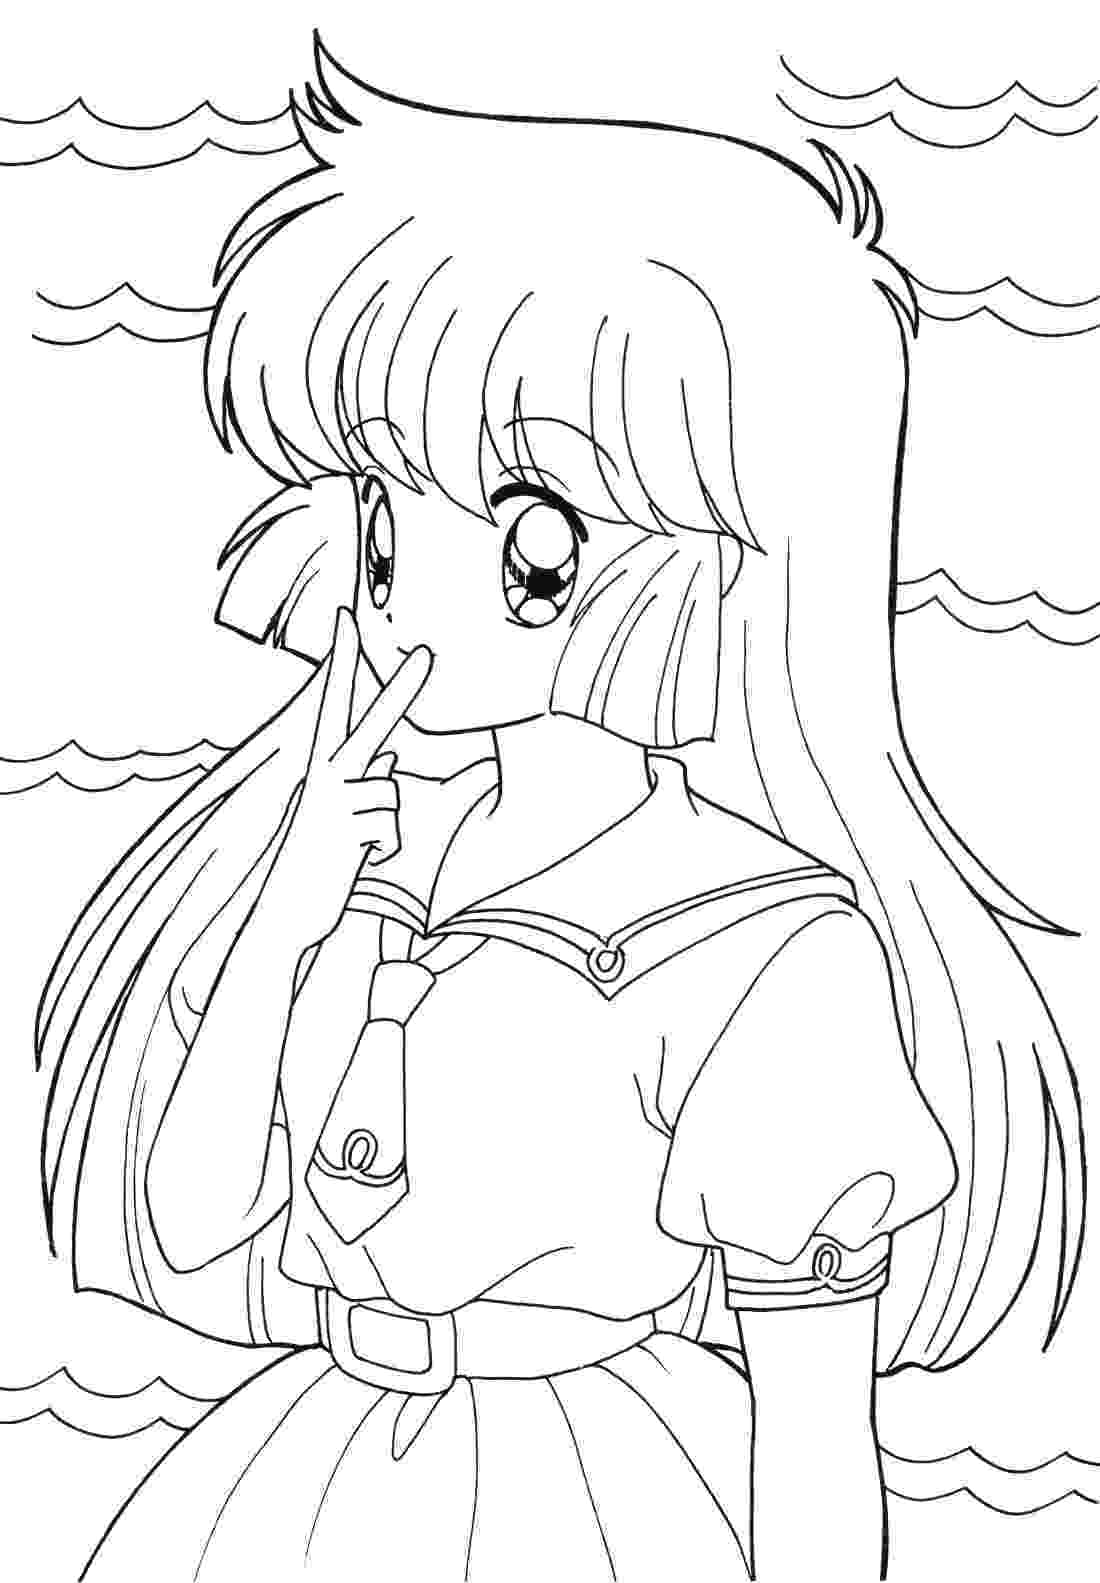 colouring pages to print for girls anime coloring pages best coloring pages for kids print pages for to girls colouring